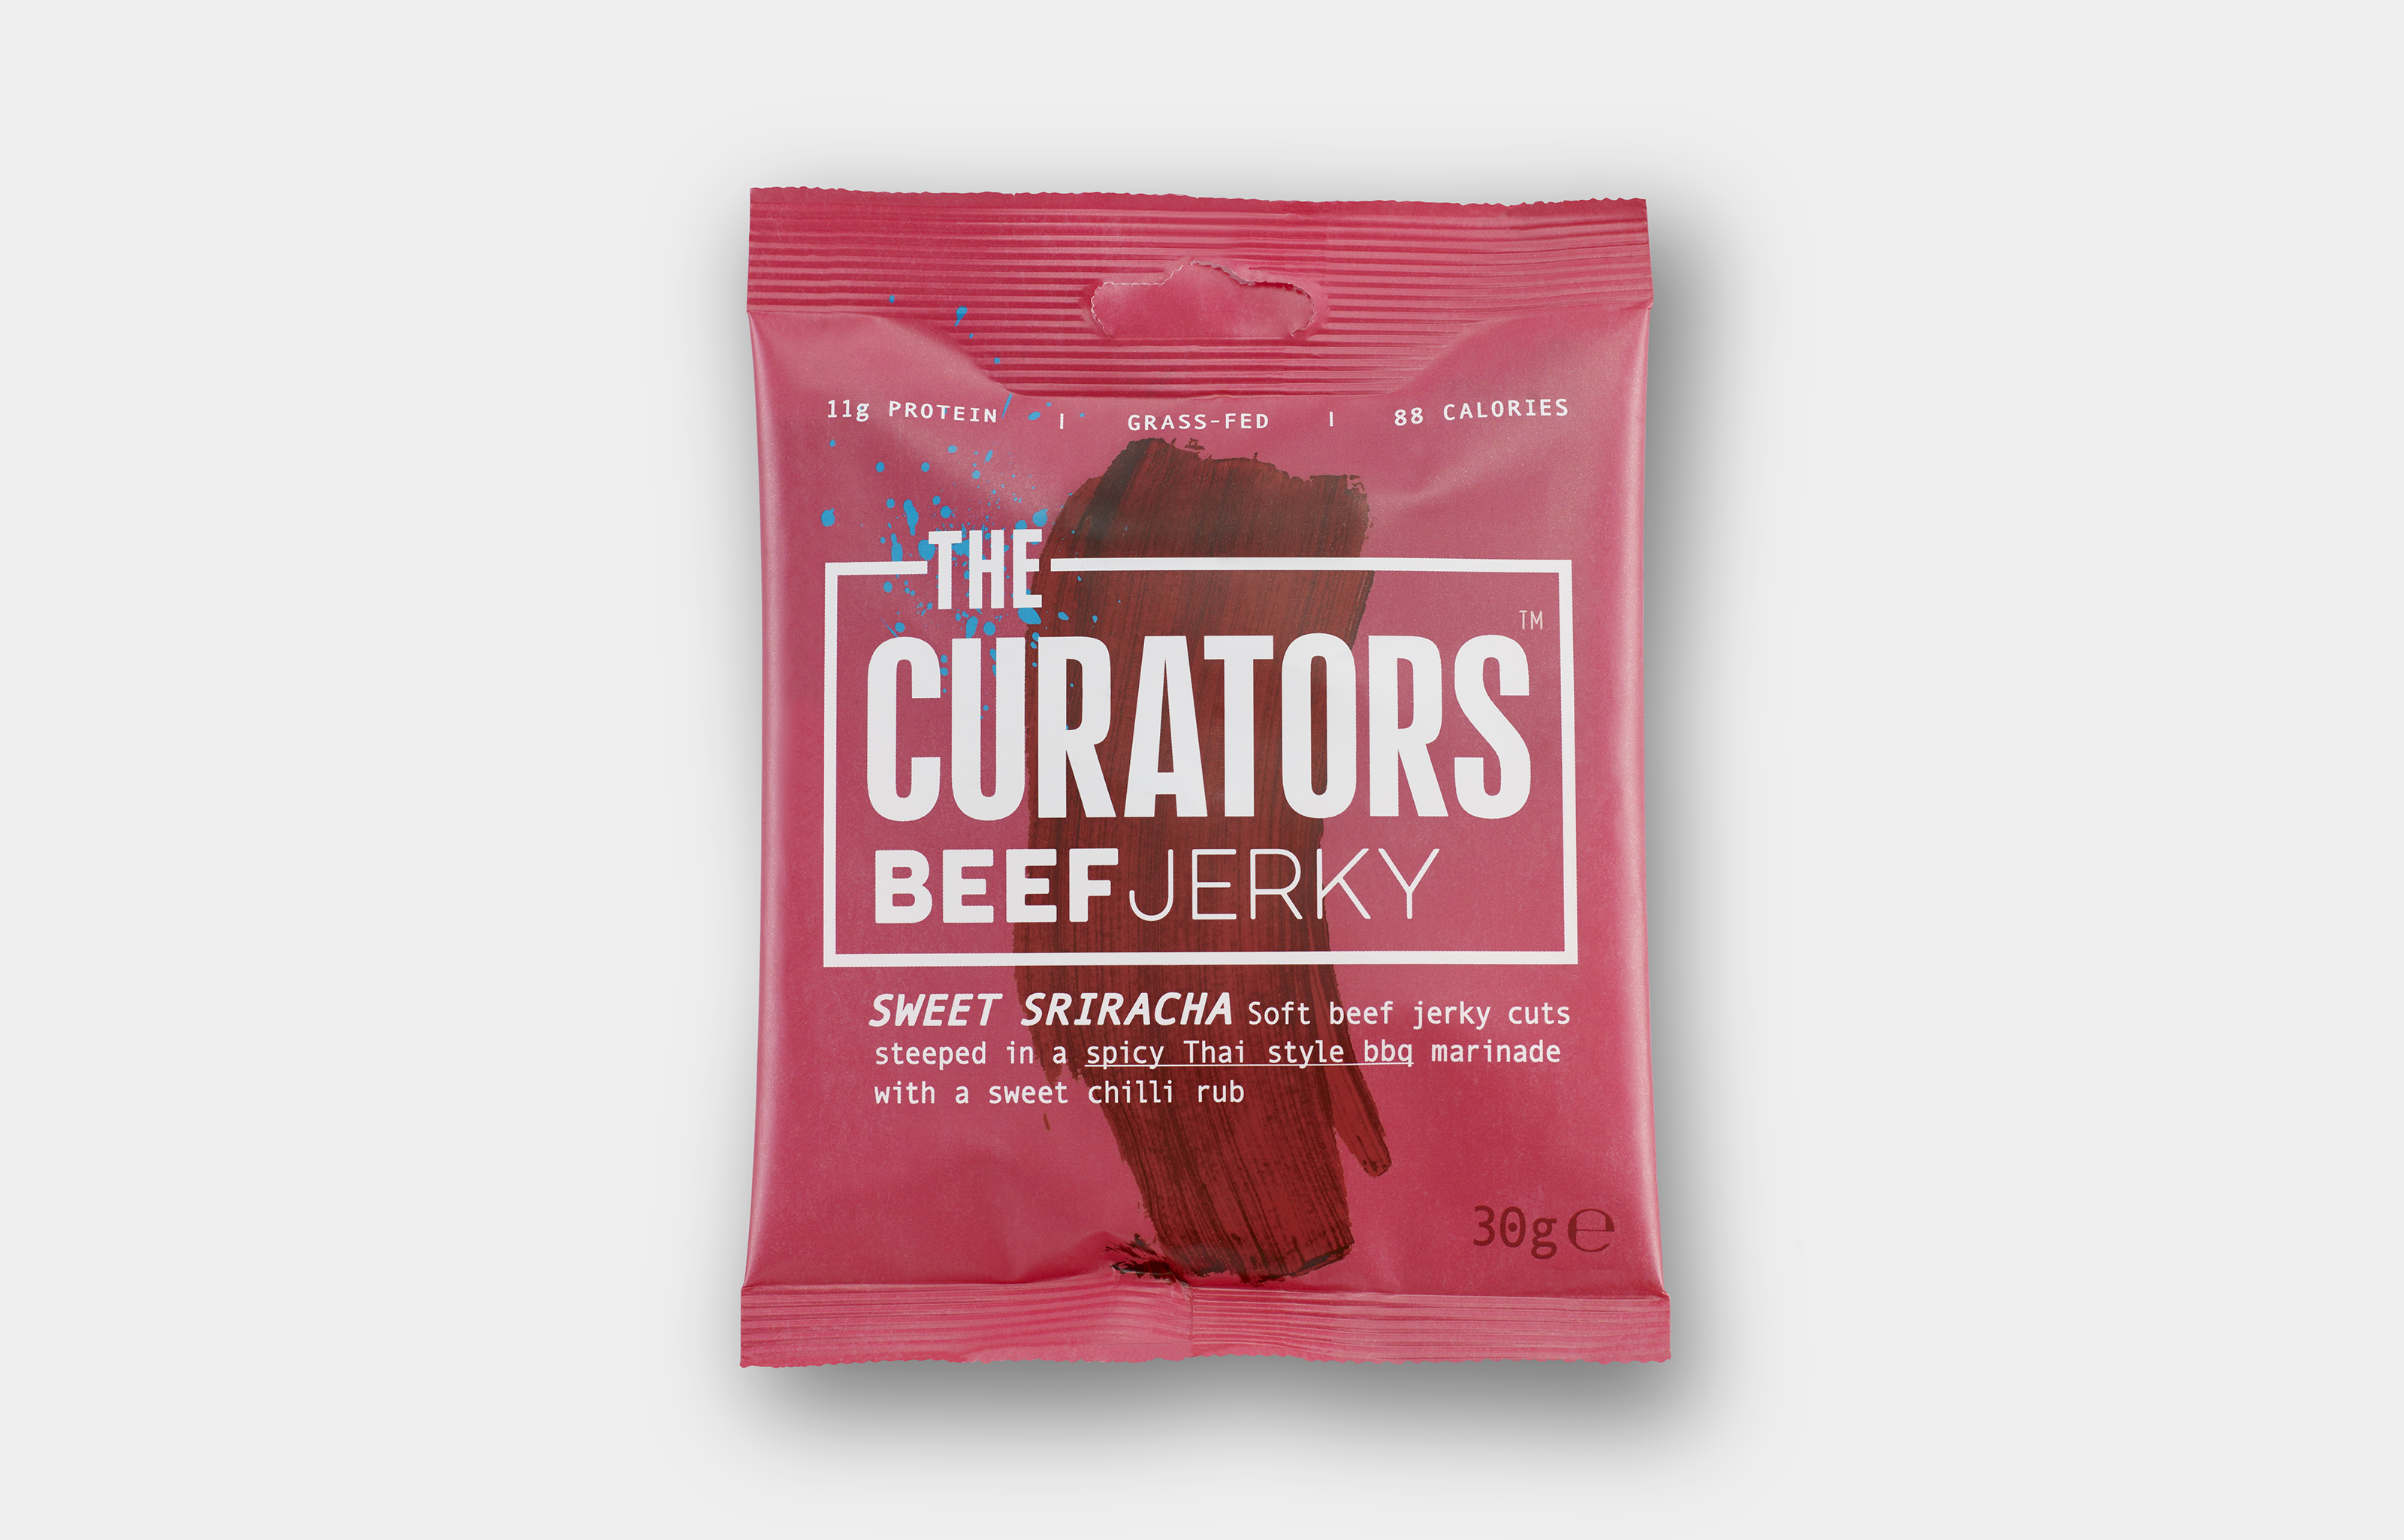 The Curators Sweet Sriracha